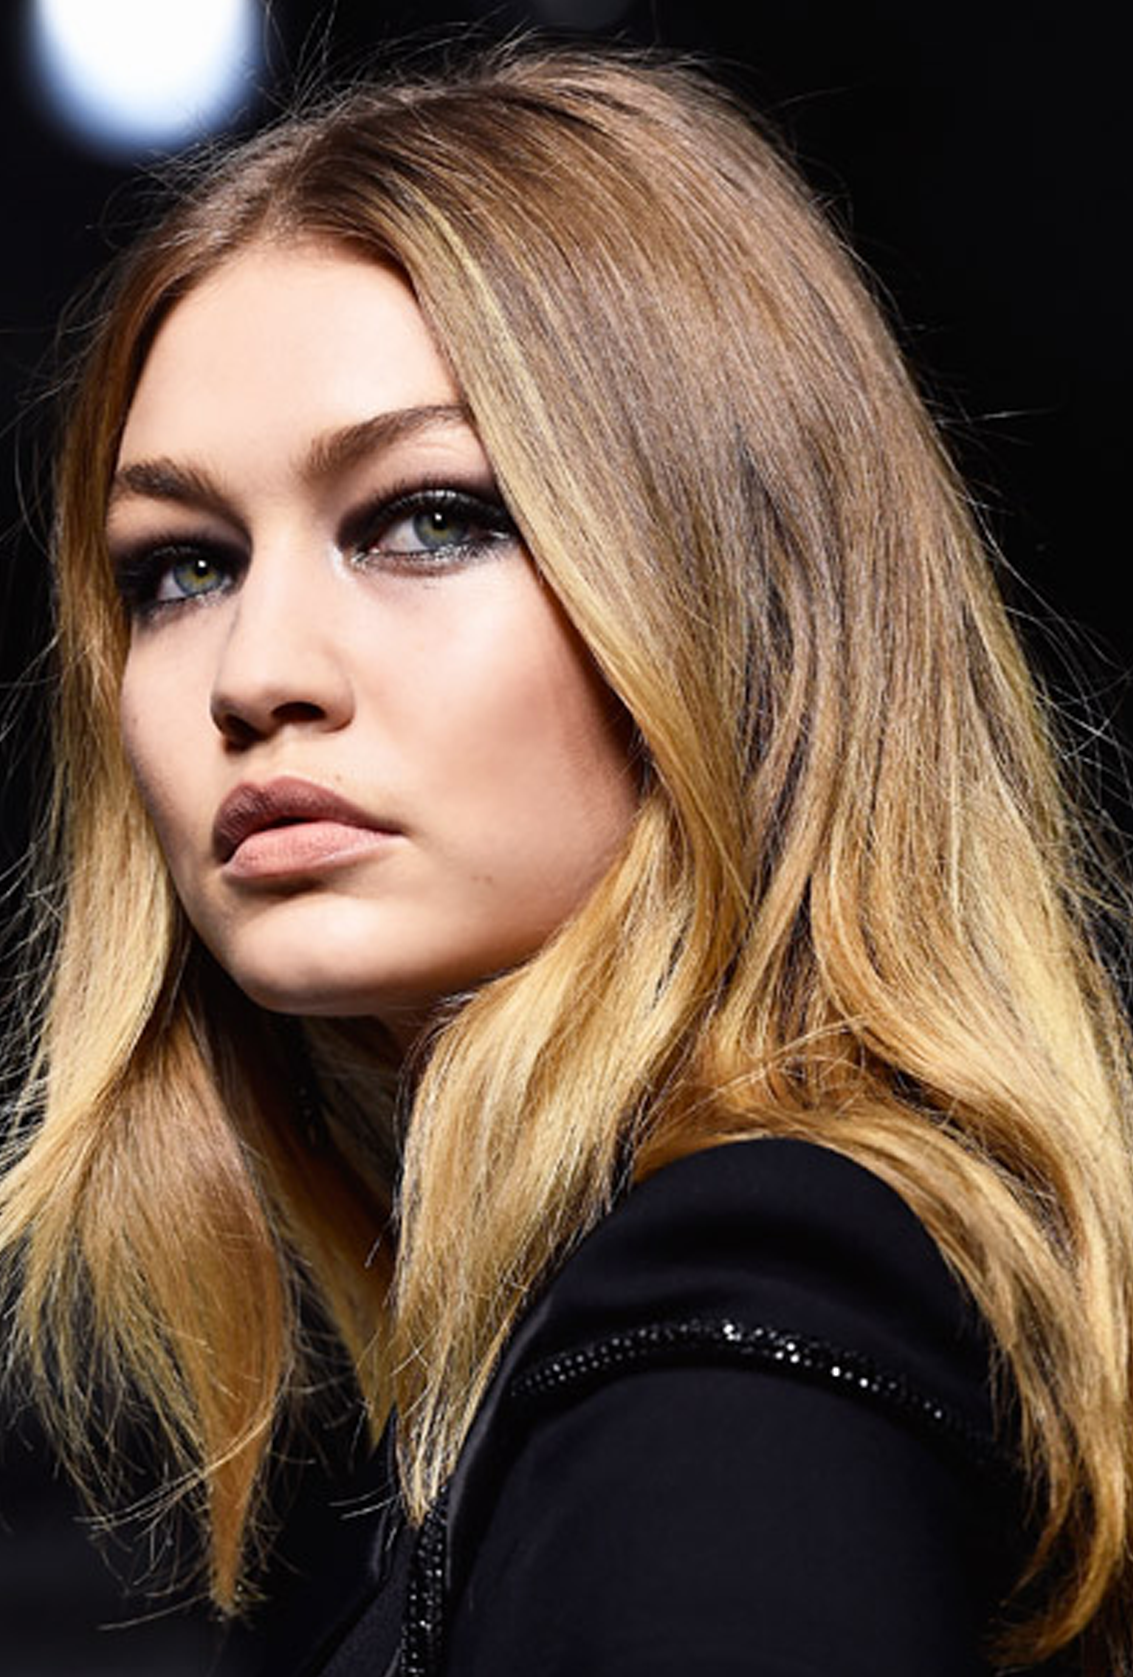 7 Makes Poderosas de Gigi Hadid 4